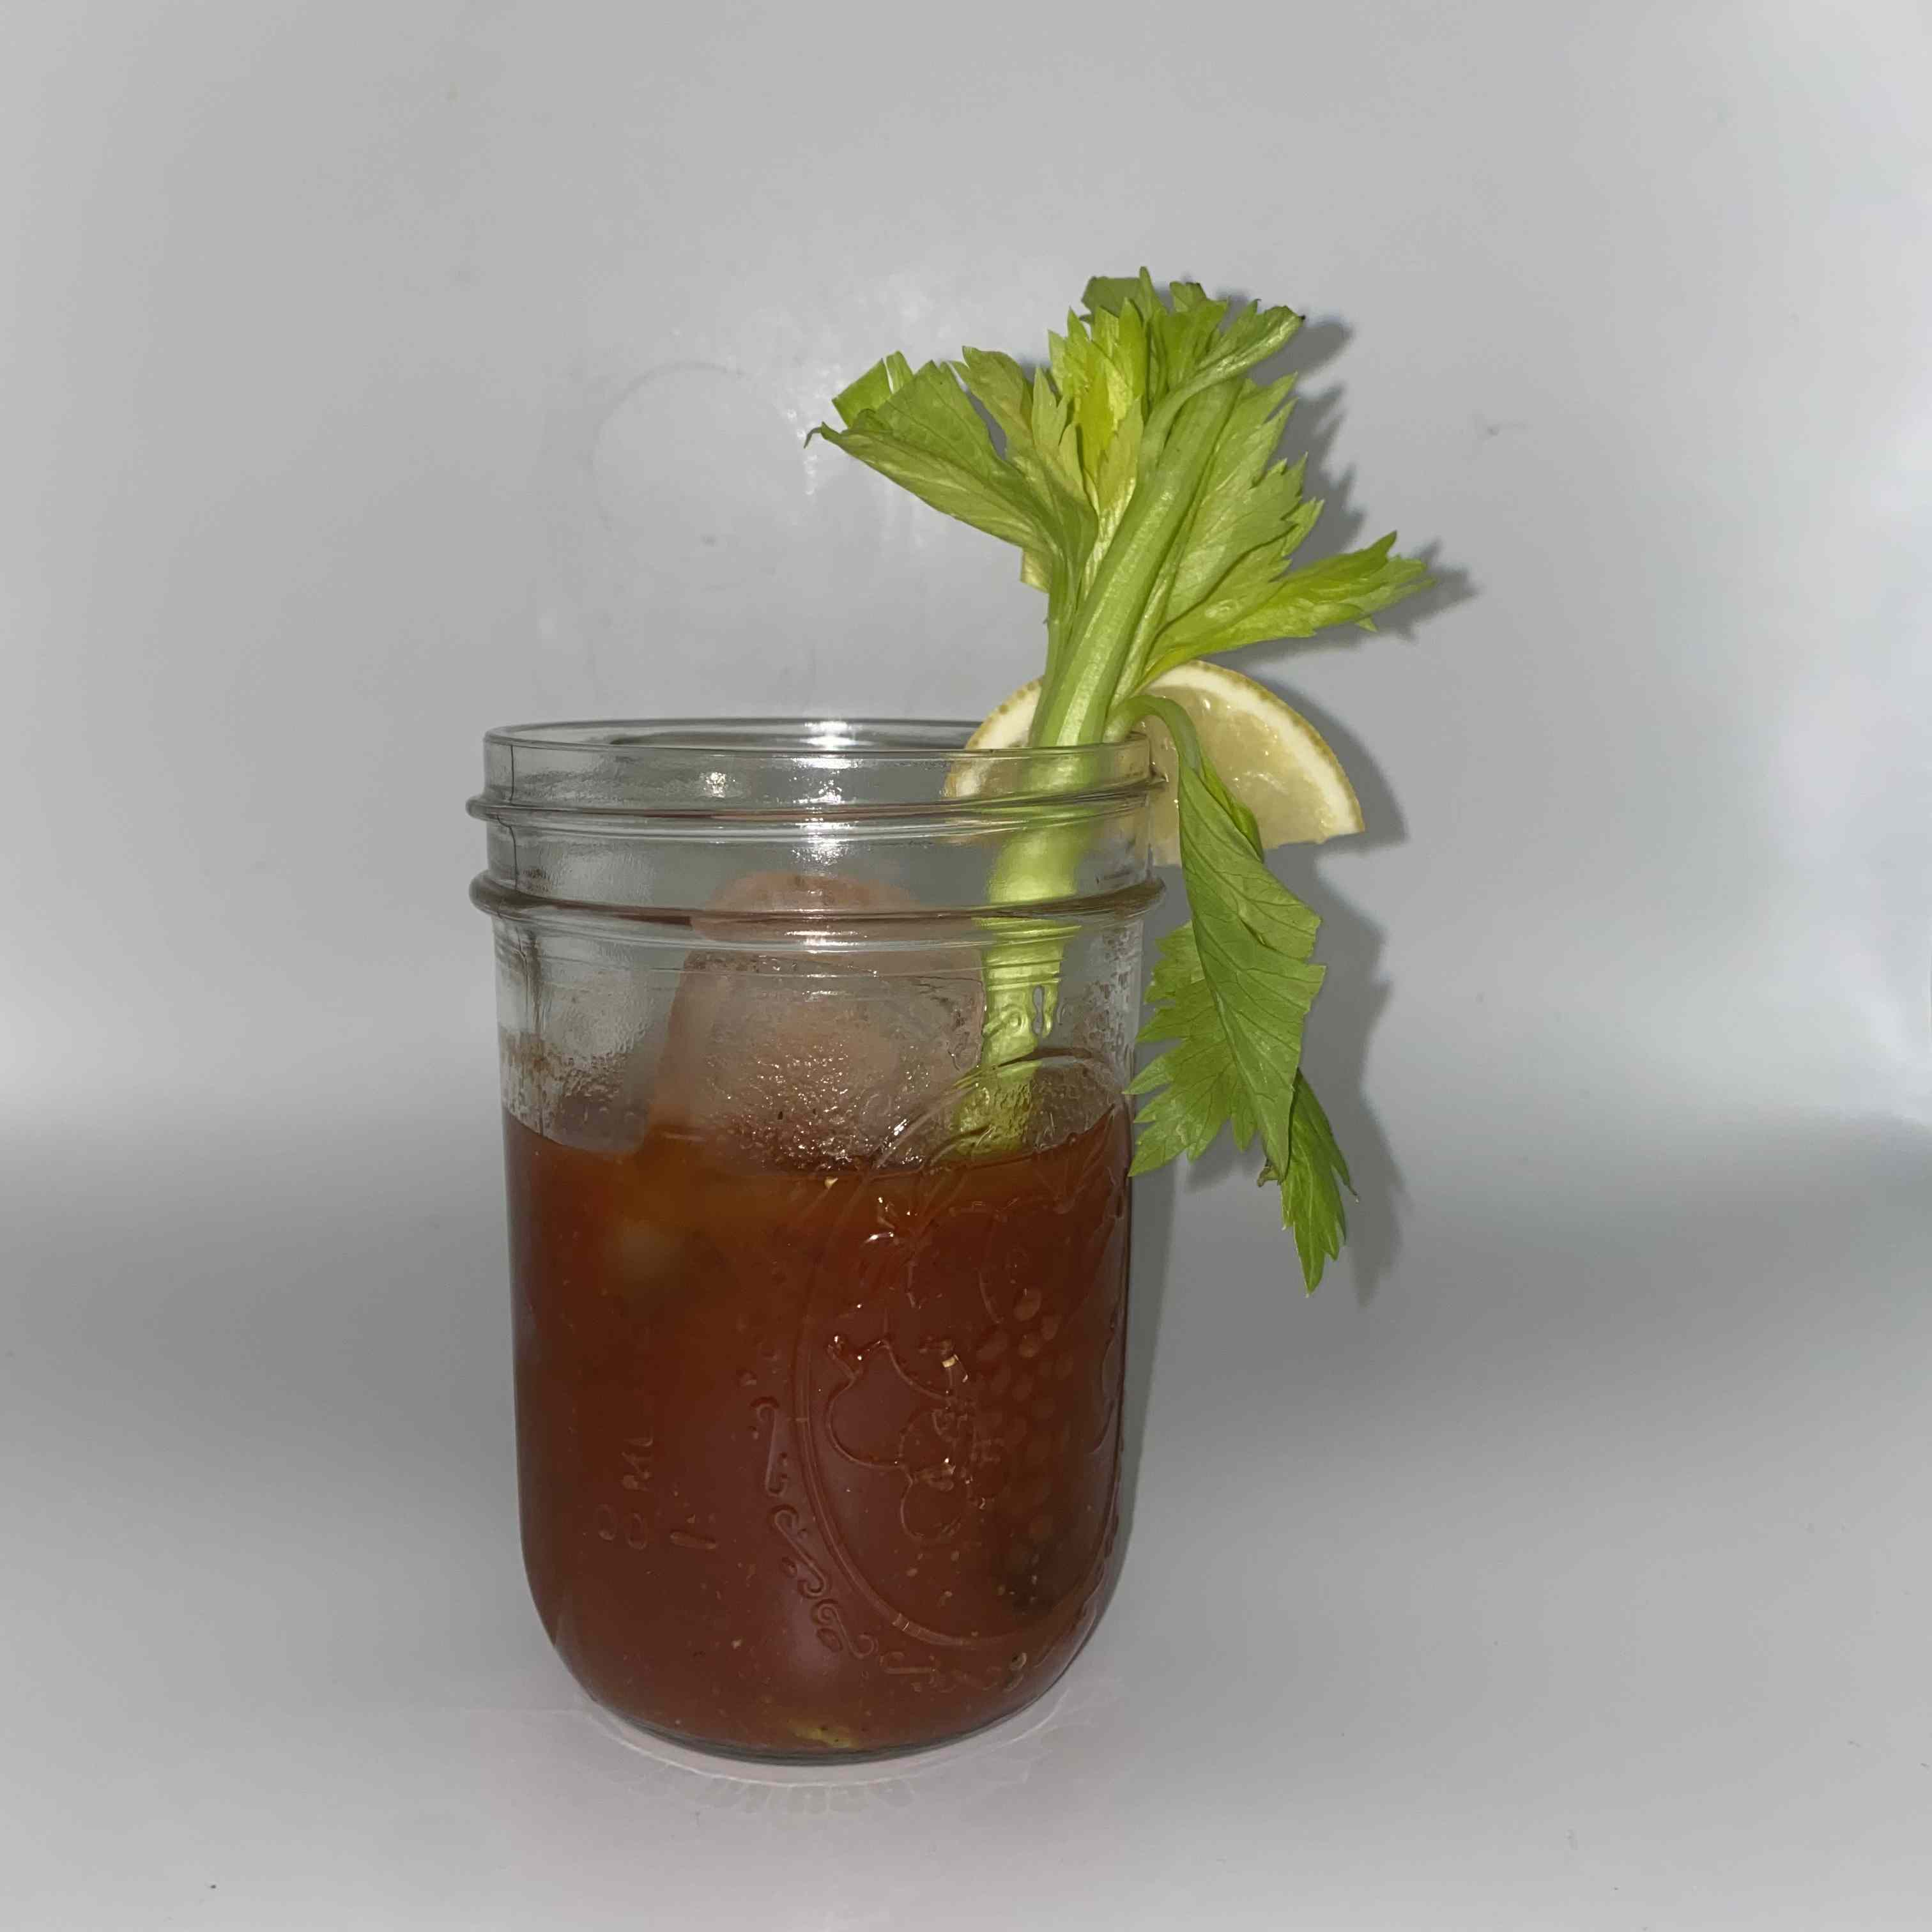 The Virgin Mary Drink Recipe Test